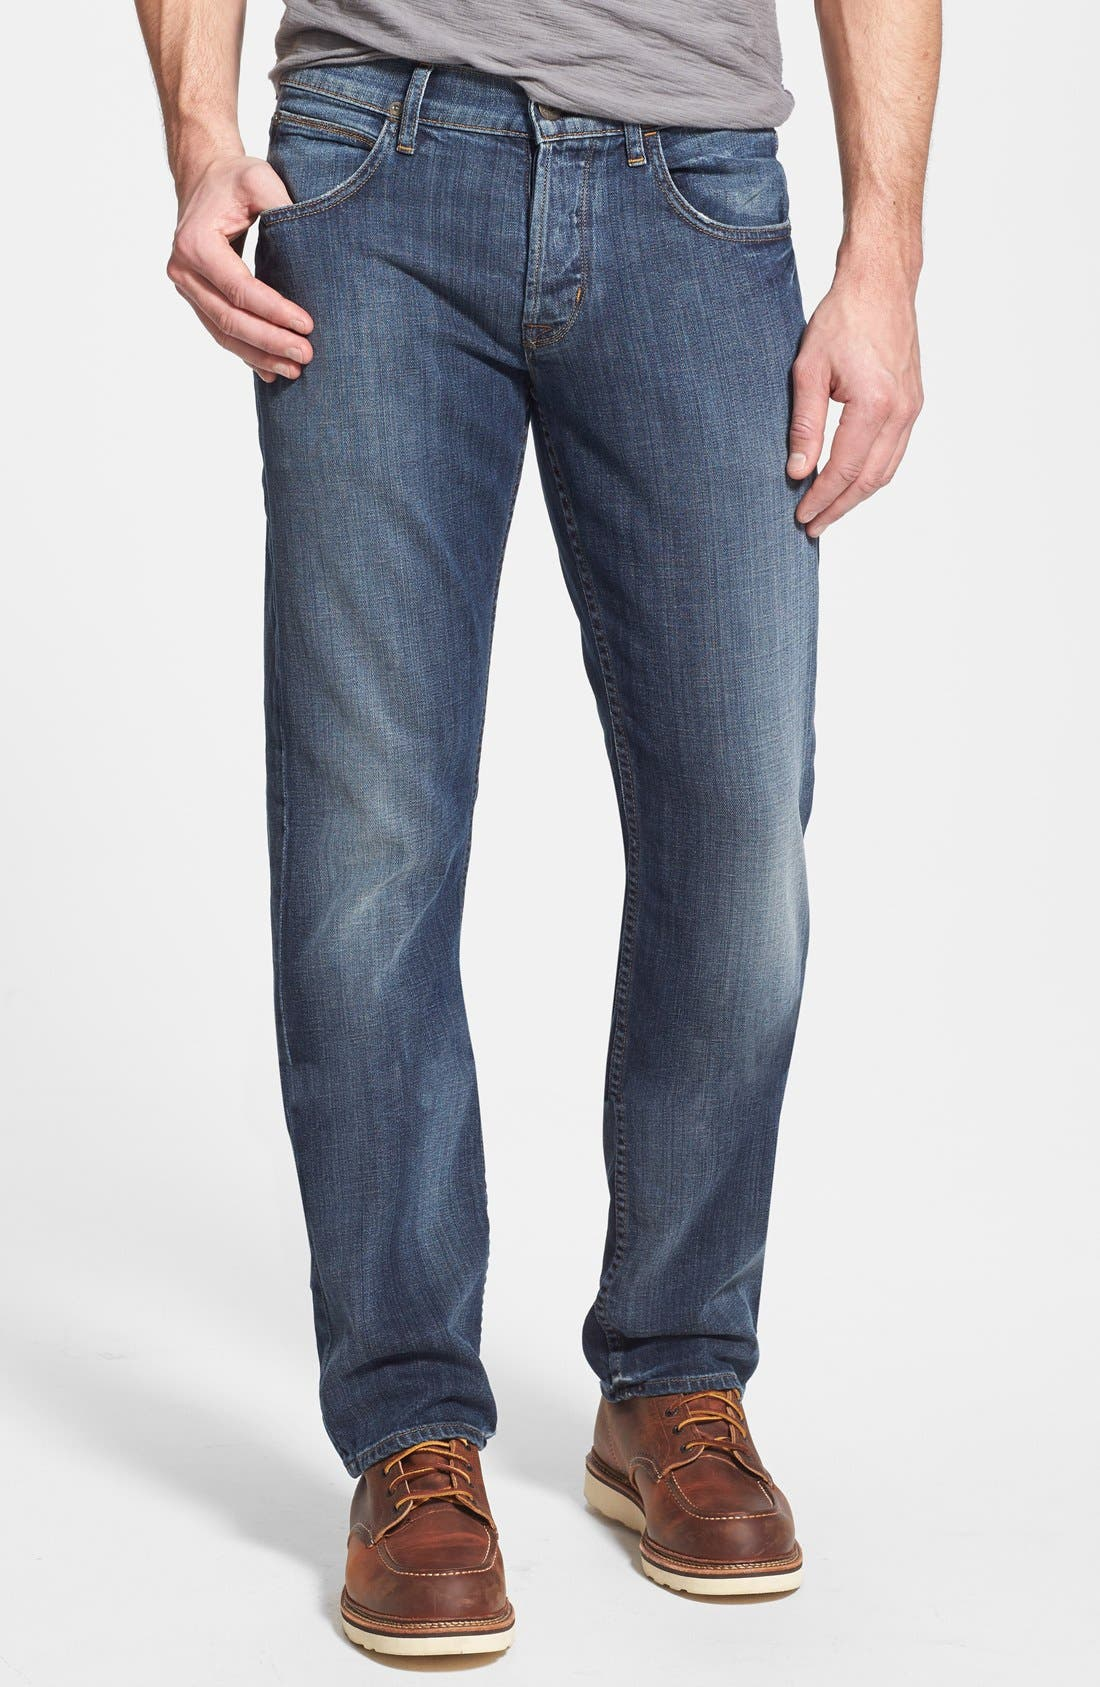 Alternate Image 1 Selected - Hudson Jeans 'Byron' Straight Leg Jeans (Down South)